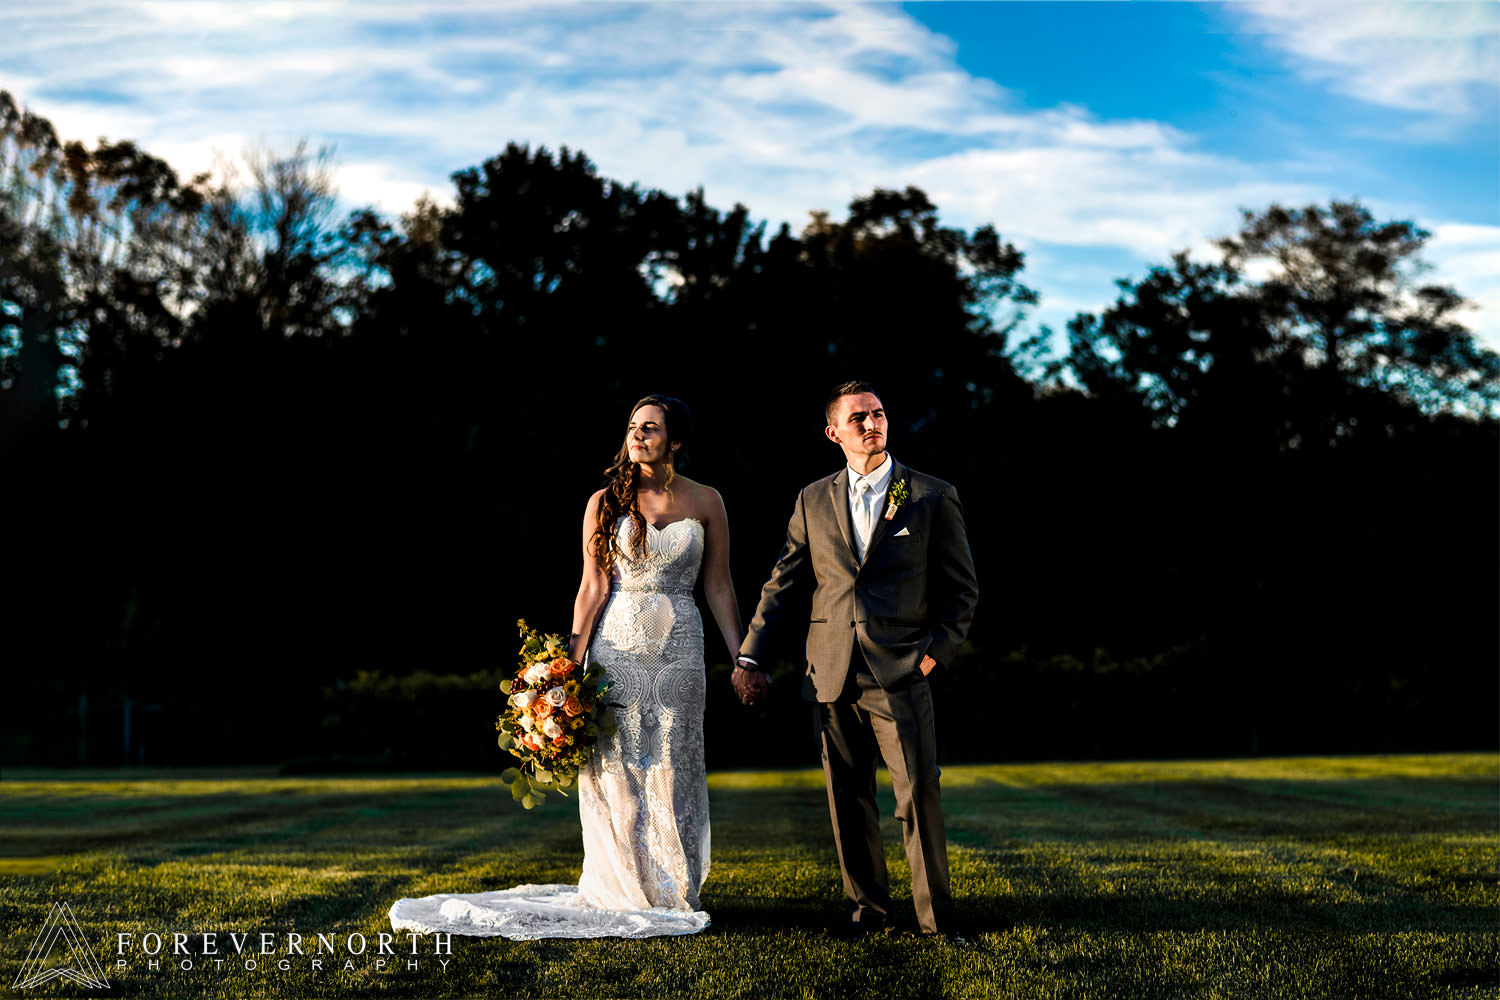 Mendyk-Valenzano-Family-Winery-NJ-Wedding-Photographer-55.JPG